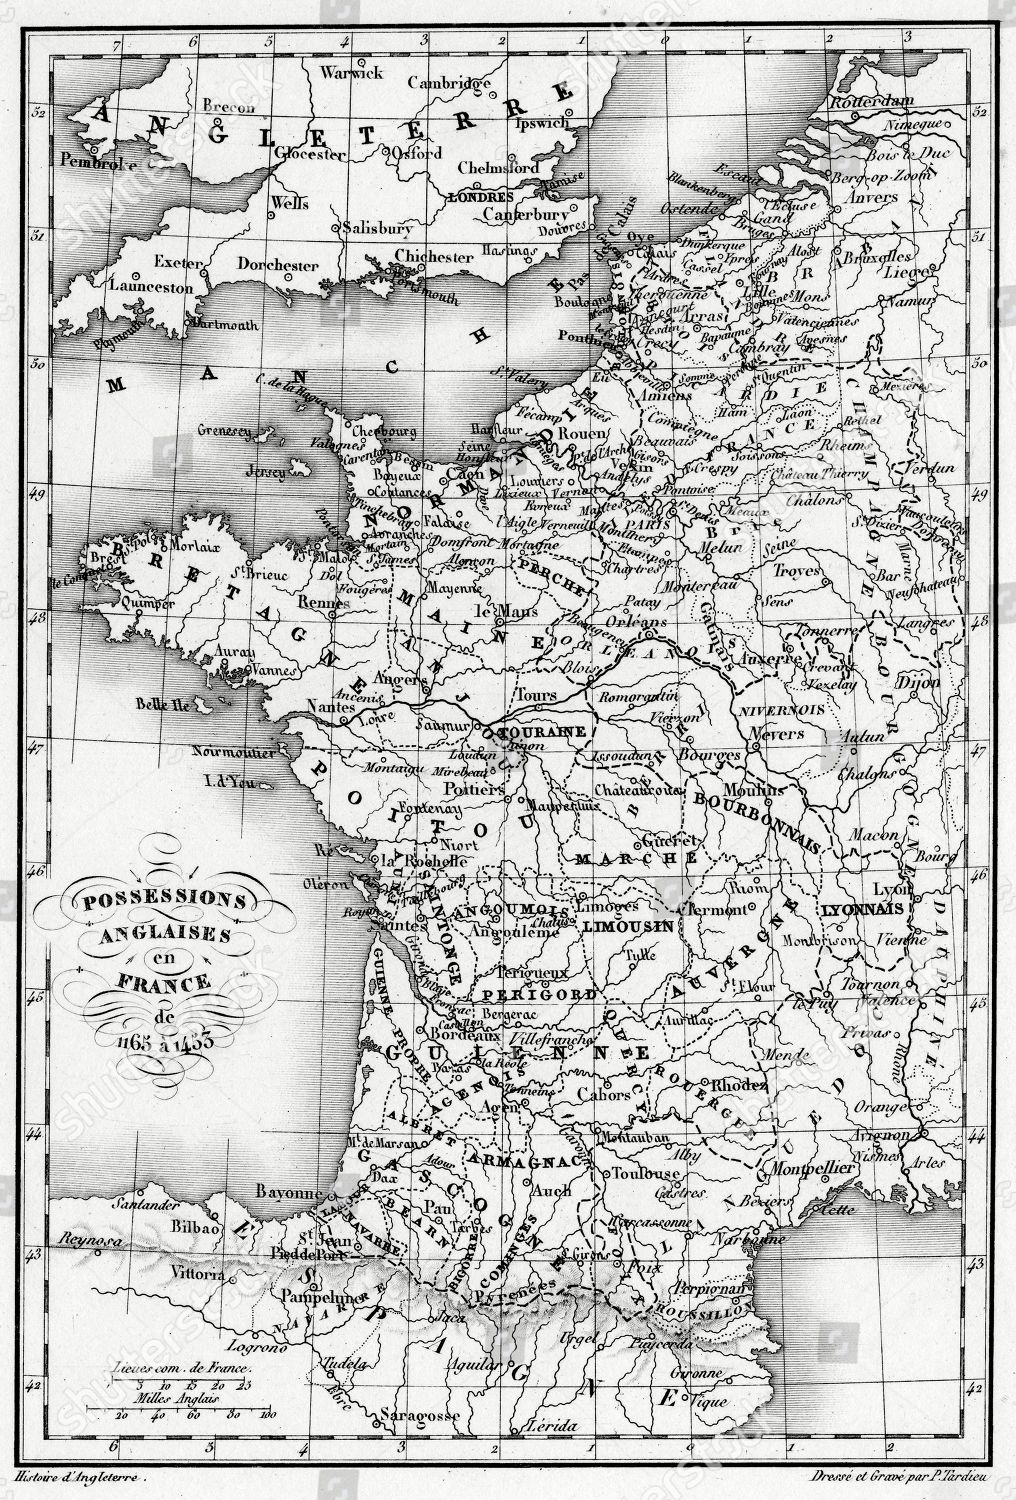 English Map Of France.Map France Showing English Possessions Between 1165 Editorial Stock